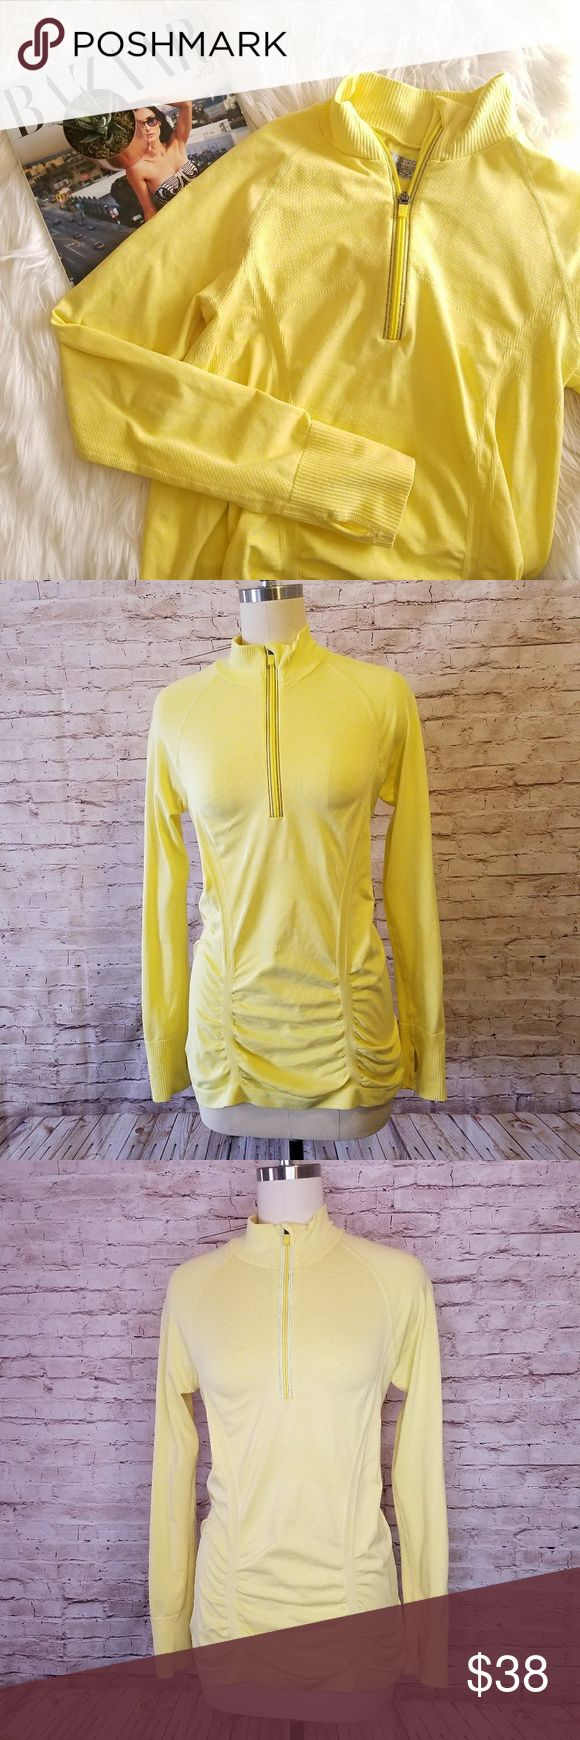 Athleta Neon Yellow 1/4 Zip long sleeve top Up for consideration is a preowned womens Athleta top. This long sleeve active top is in great overall condition!   Pit to pit approx 16in Shoulder to hem approx 25in Sleeve length approx 24in  /EC/ Athleta Tops Tees - Long Sleeve